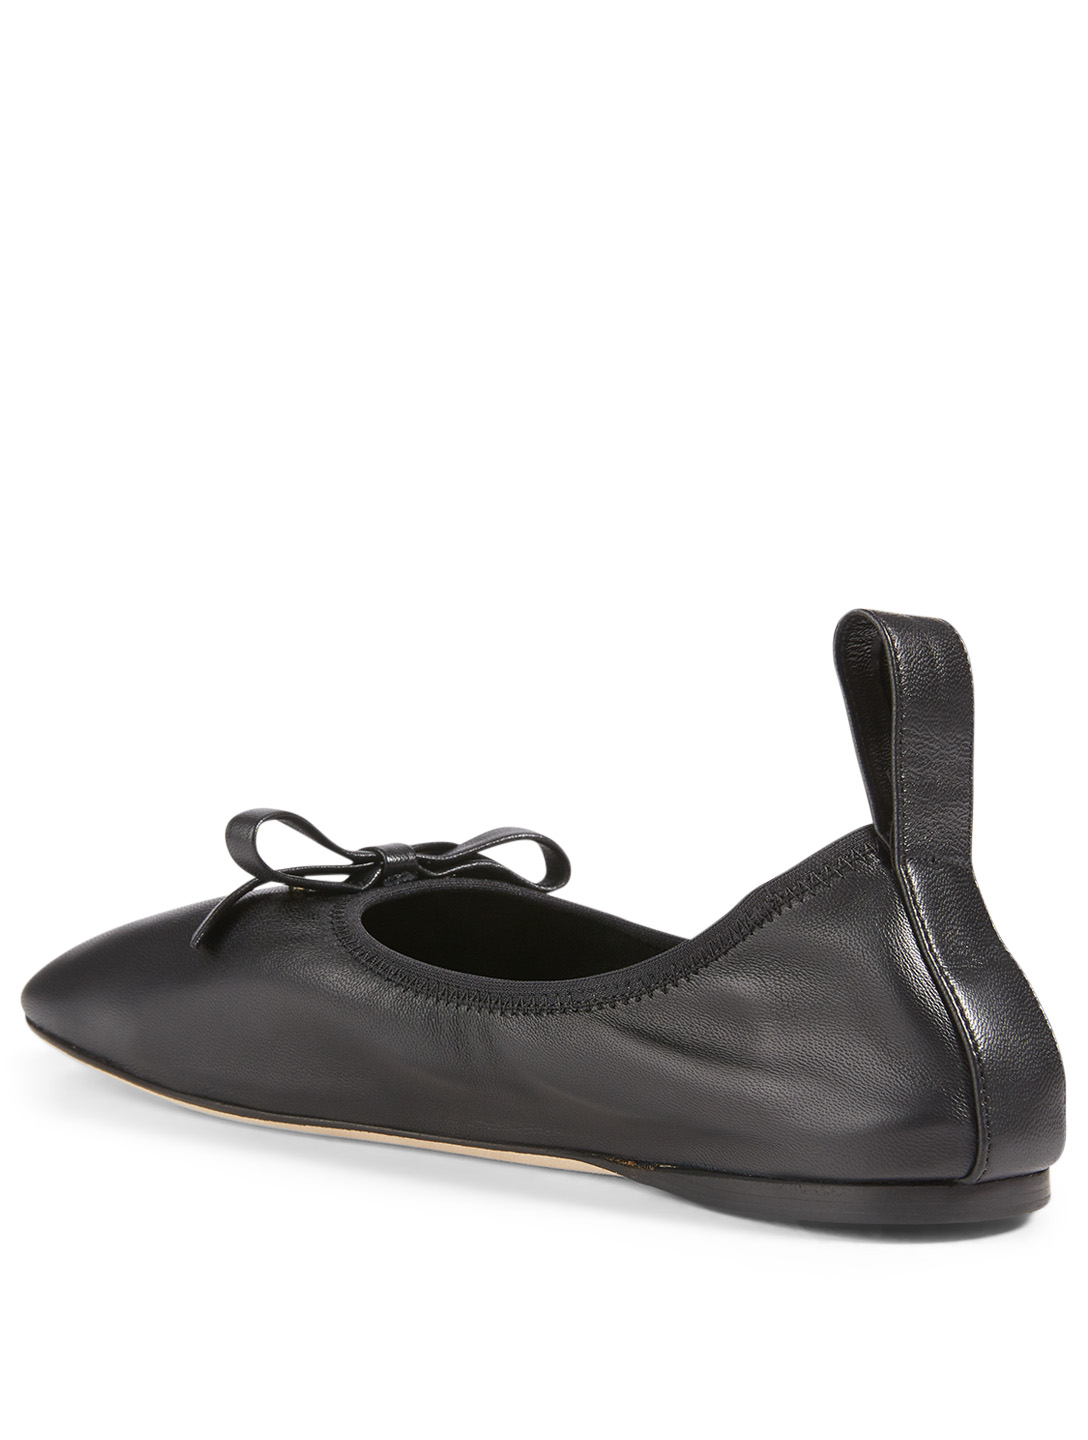 LOEWE Leather Ballet Flats With Bow Women's Black